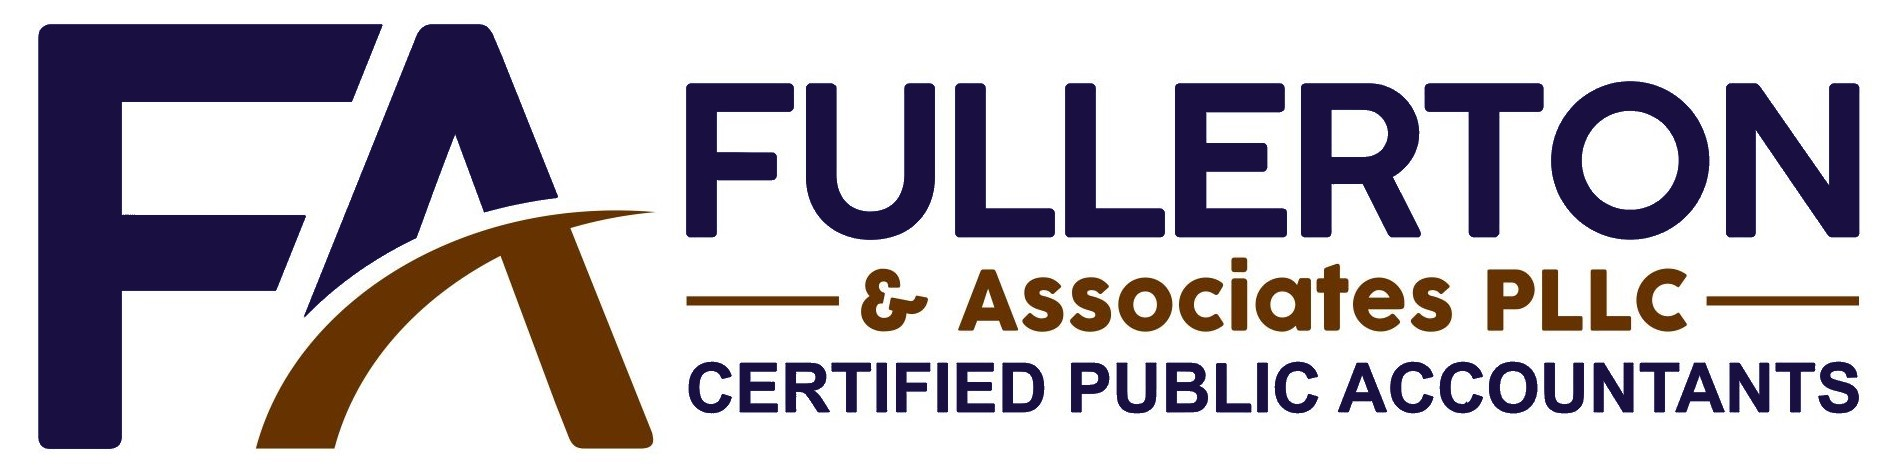 Abilene, Texas CPA Firm | Part-Time CFO Services Page | Fullerton & Associates PLLC